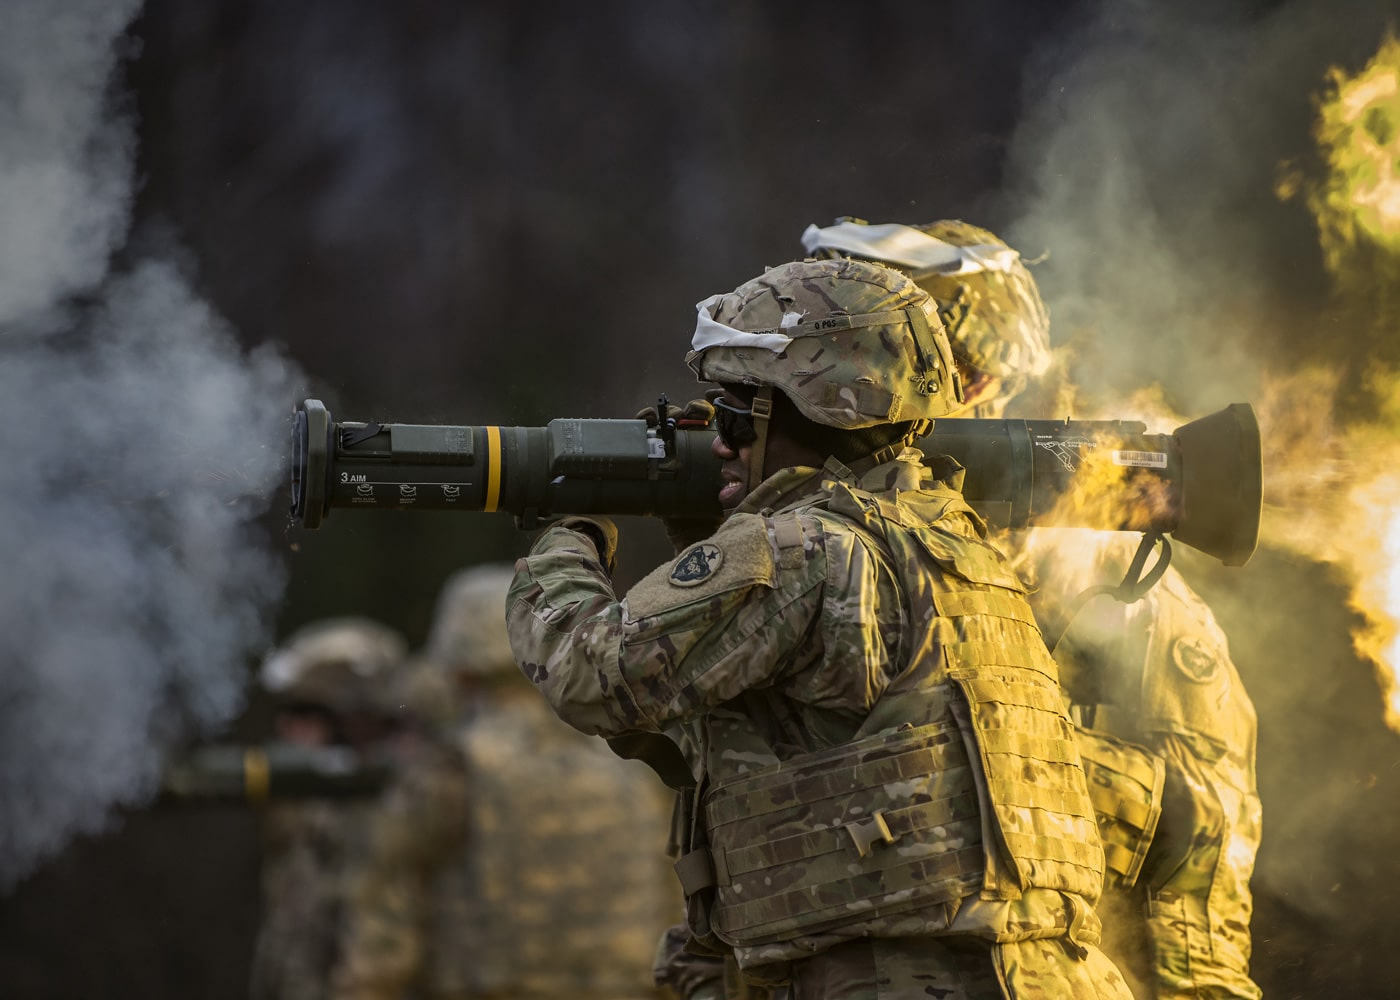 The Soldiers of 17th CSSB recently completed a series of live-fire training events that honed their skills on a variety of weapon systems to include: the M4 carbine, the M9 pistol, the M203 grenade launcher, and the M136E1 AT4-CS confined space light anti-armor weapon.